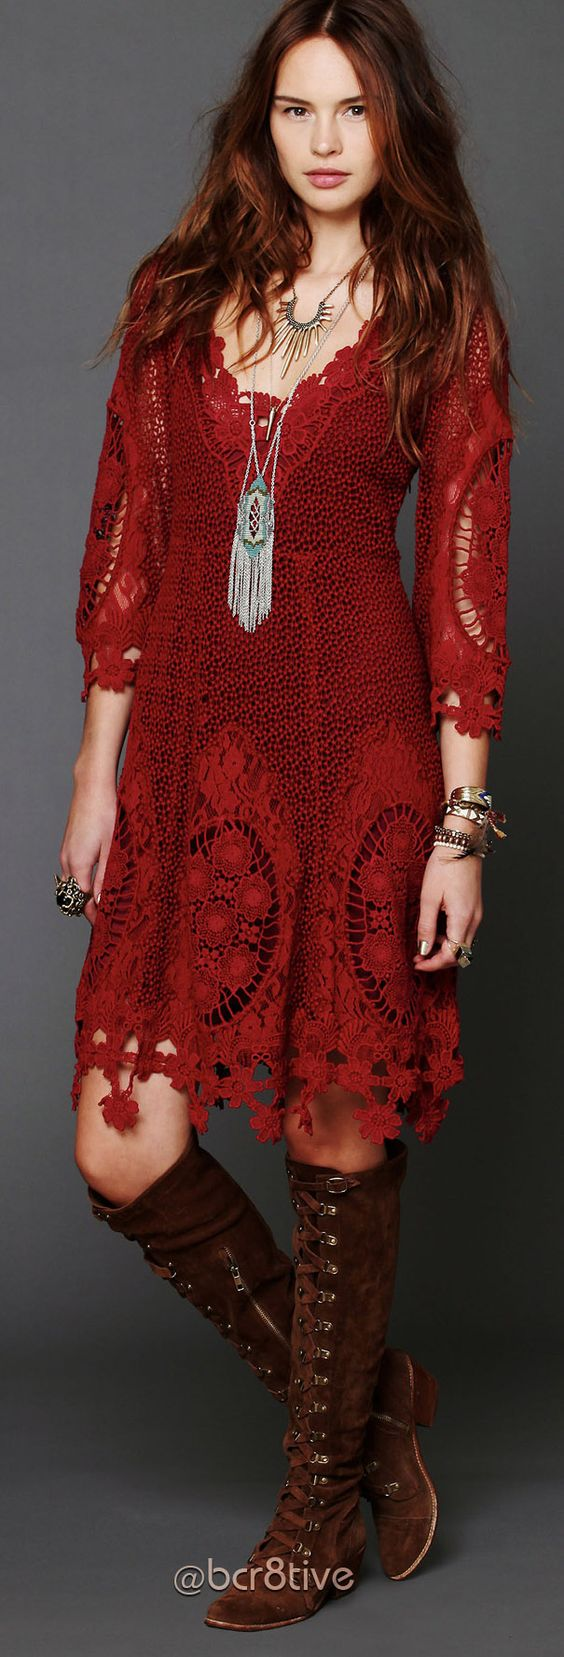 Beautiful!  Free People - Mi Amore Lace Dress - Floral crochet dress with 3/4-length bell-sleeves✤: